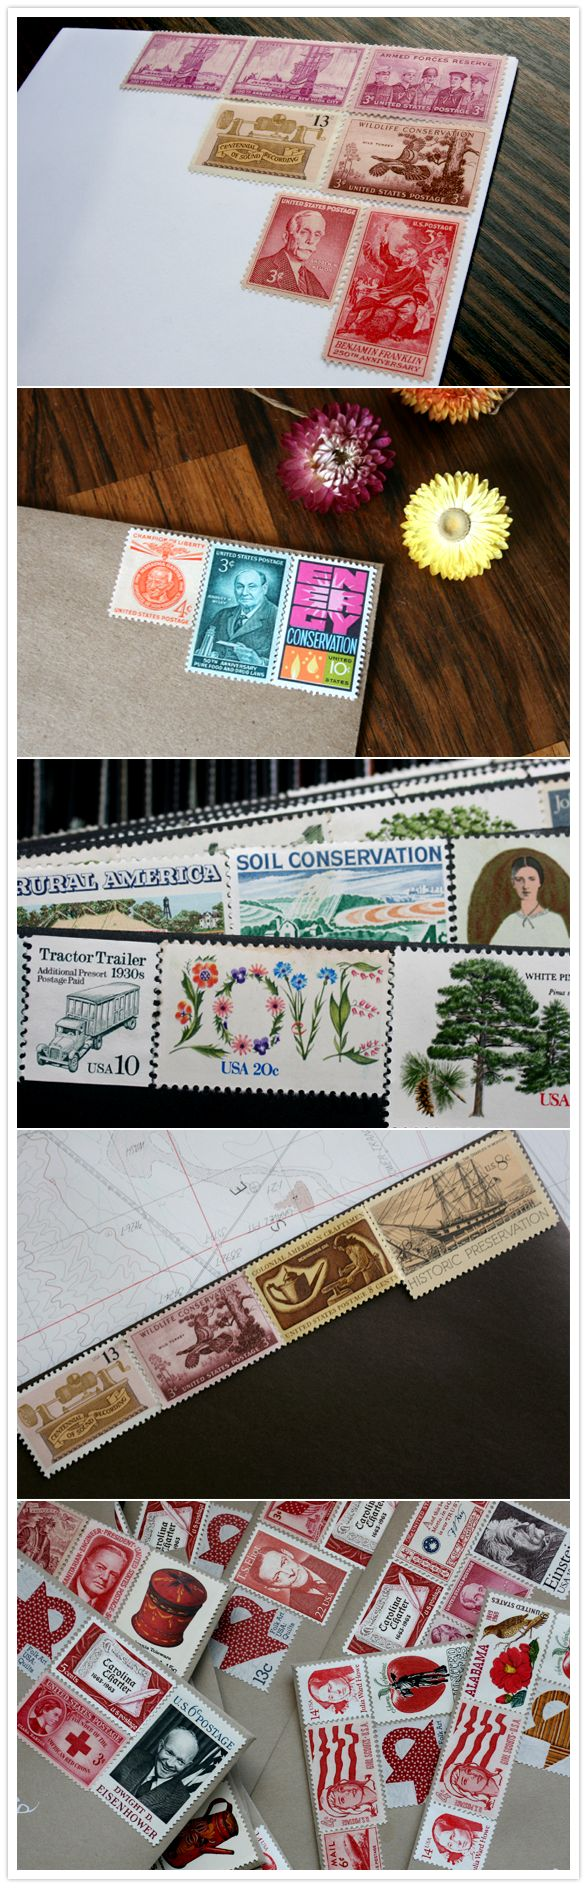 "Vintage Stamps and How to Find Them - Are you looking for ""face value"" vintage stamps? This post may help you out with online resources and suggesting using your local coin & stamp shop."